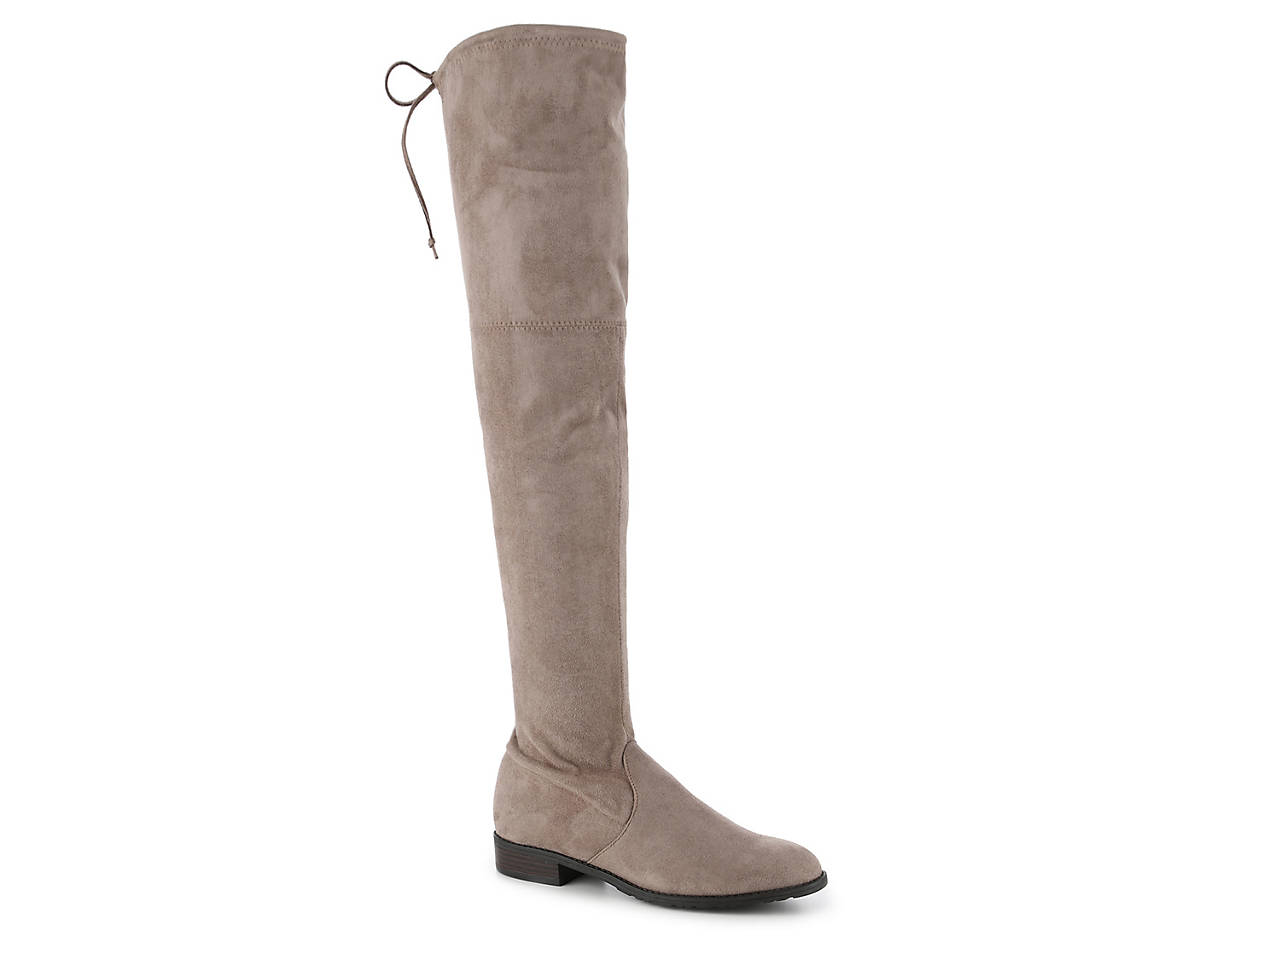 786a198a14 Unisa Adivan Over The Knee Boot Women's Shoes | DSW